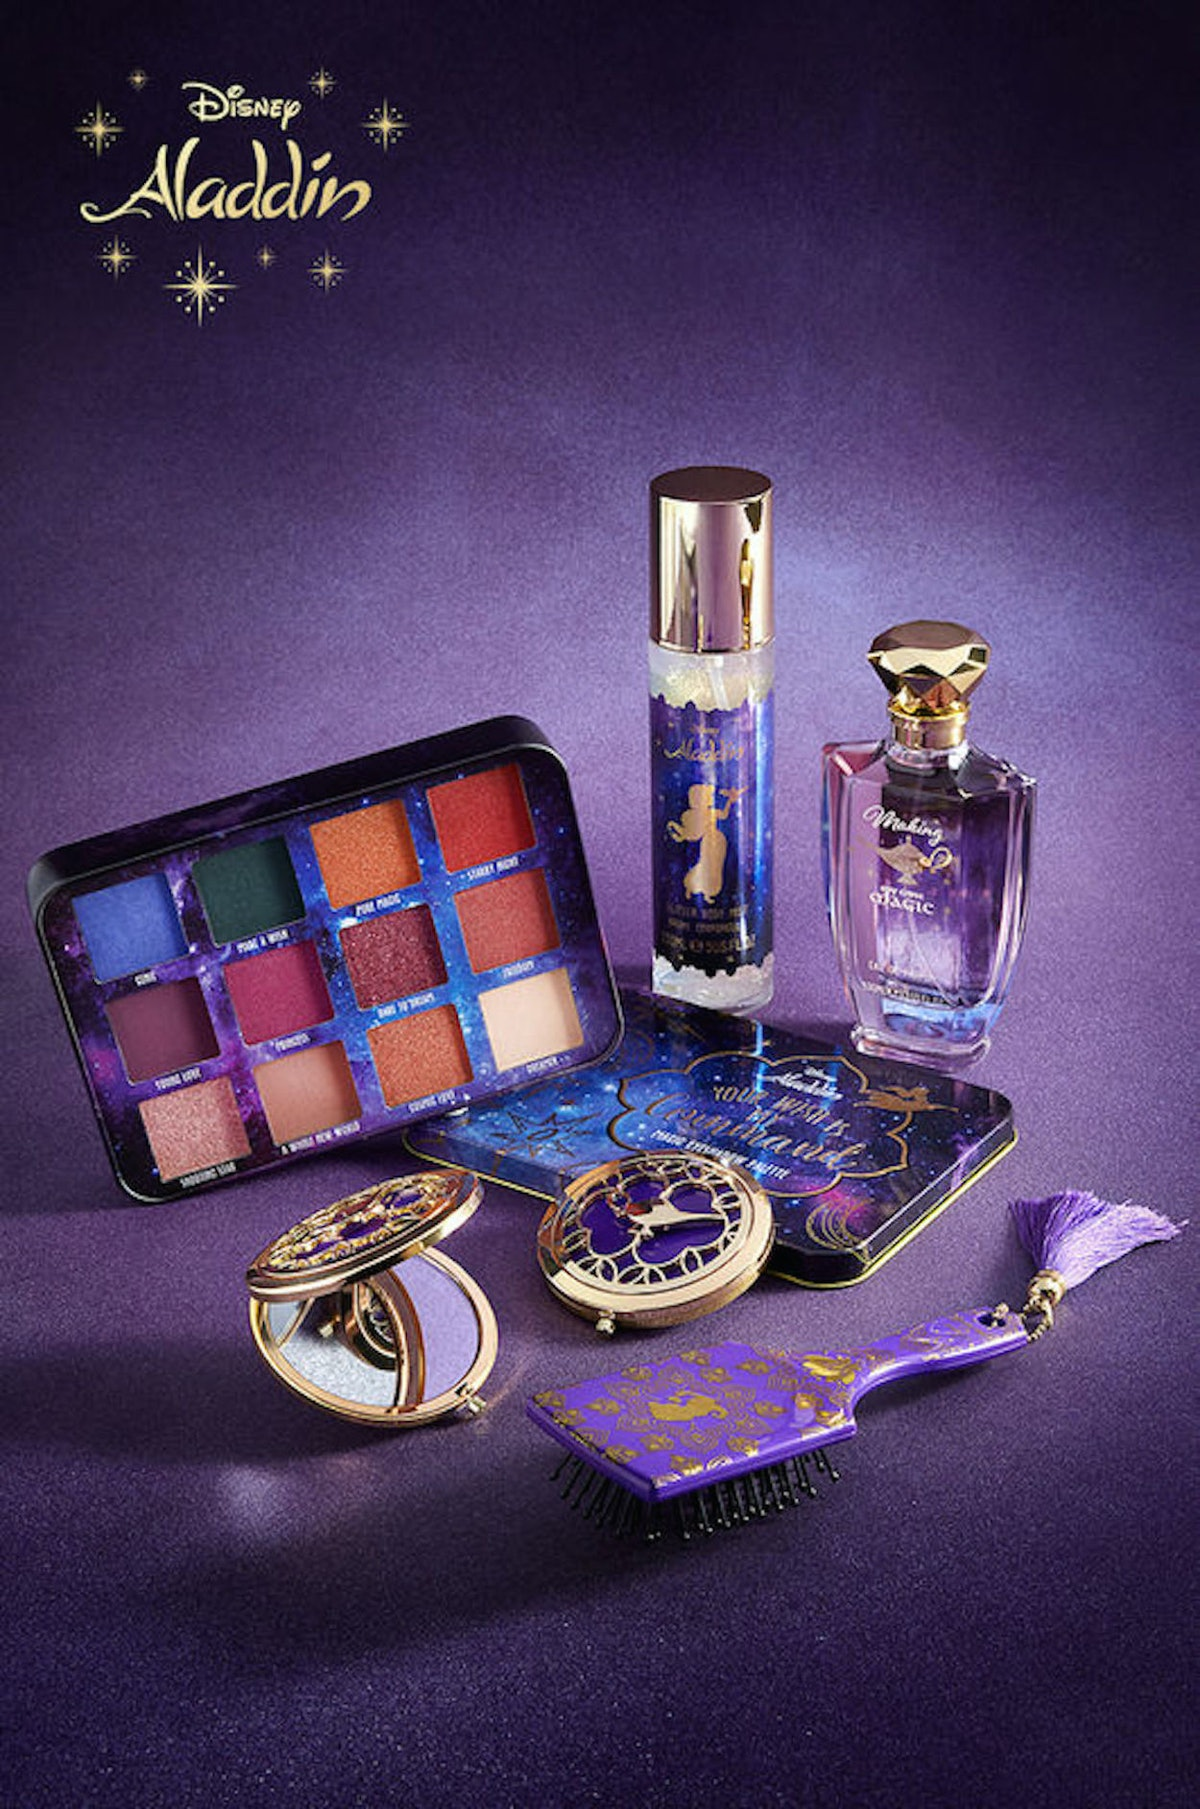 Where To Buy Primark's 'Aladdin' Makeup Collection For A Whole New World Of Beauty